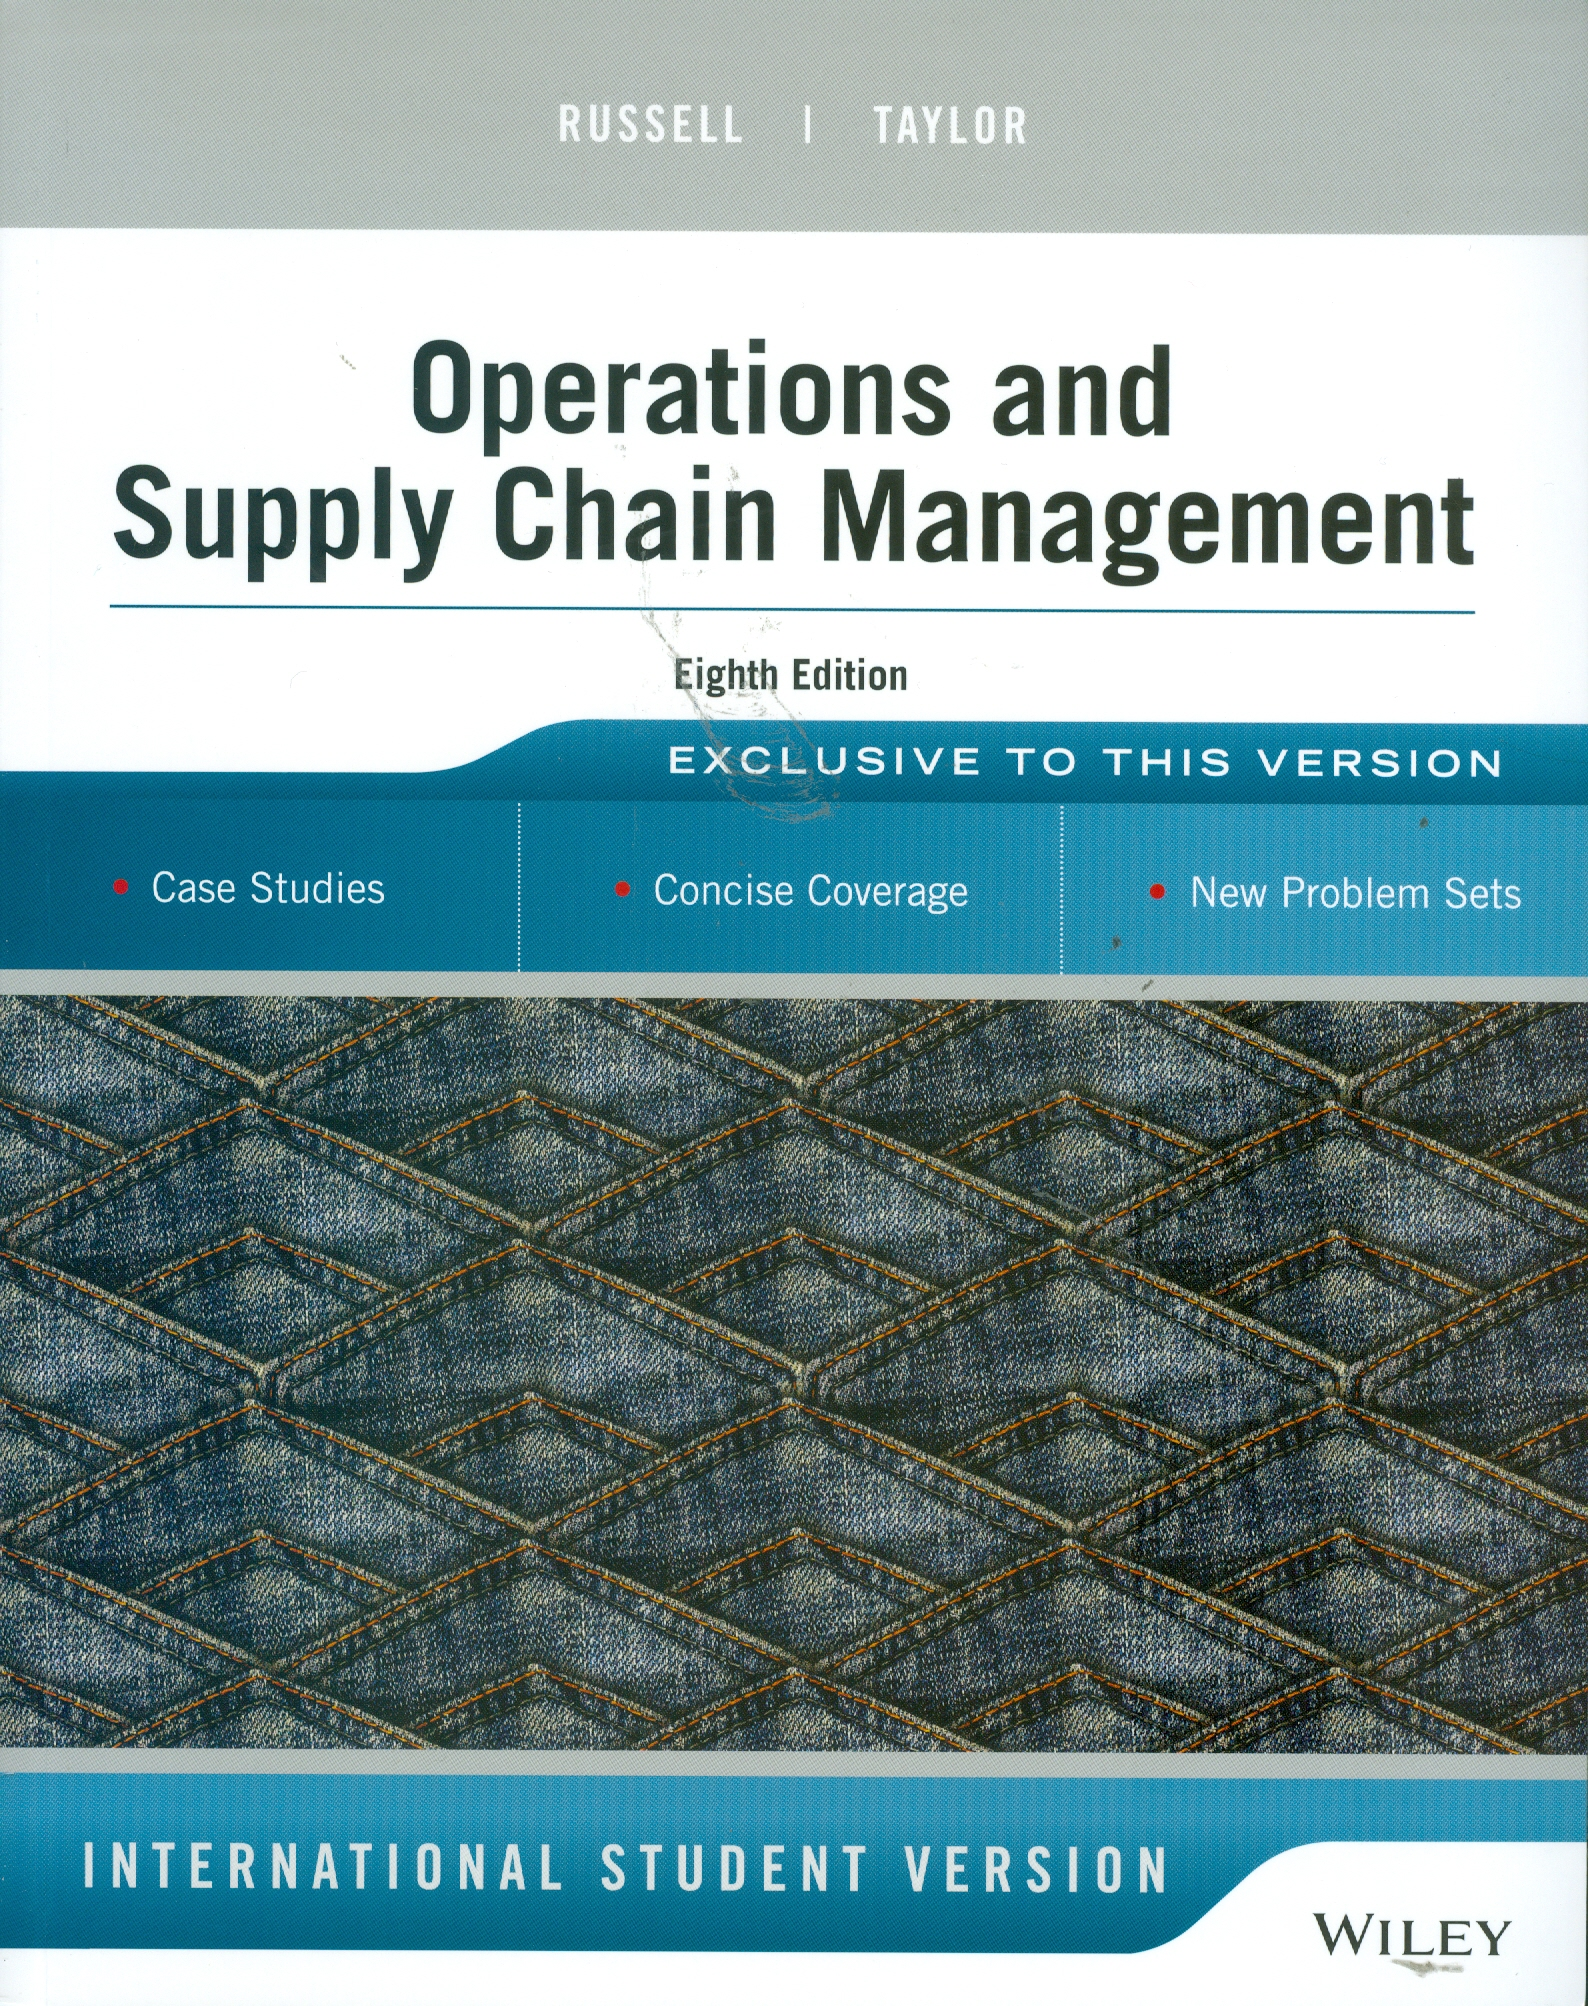 operations and supply chain management 8th0001.jpg